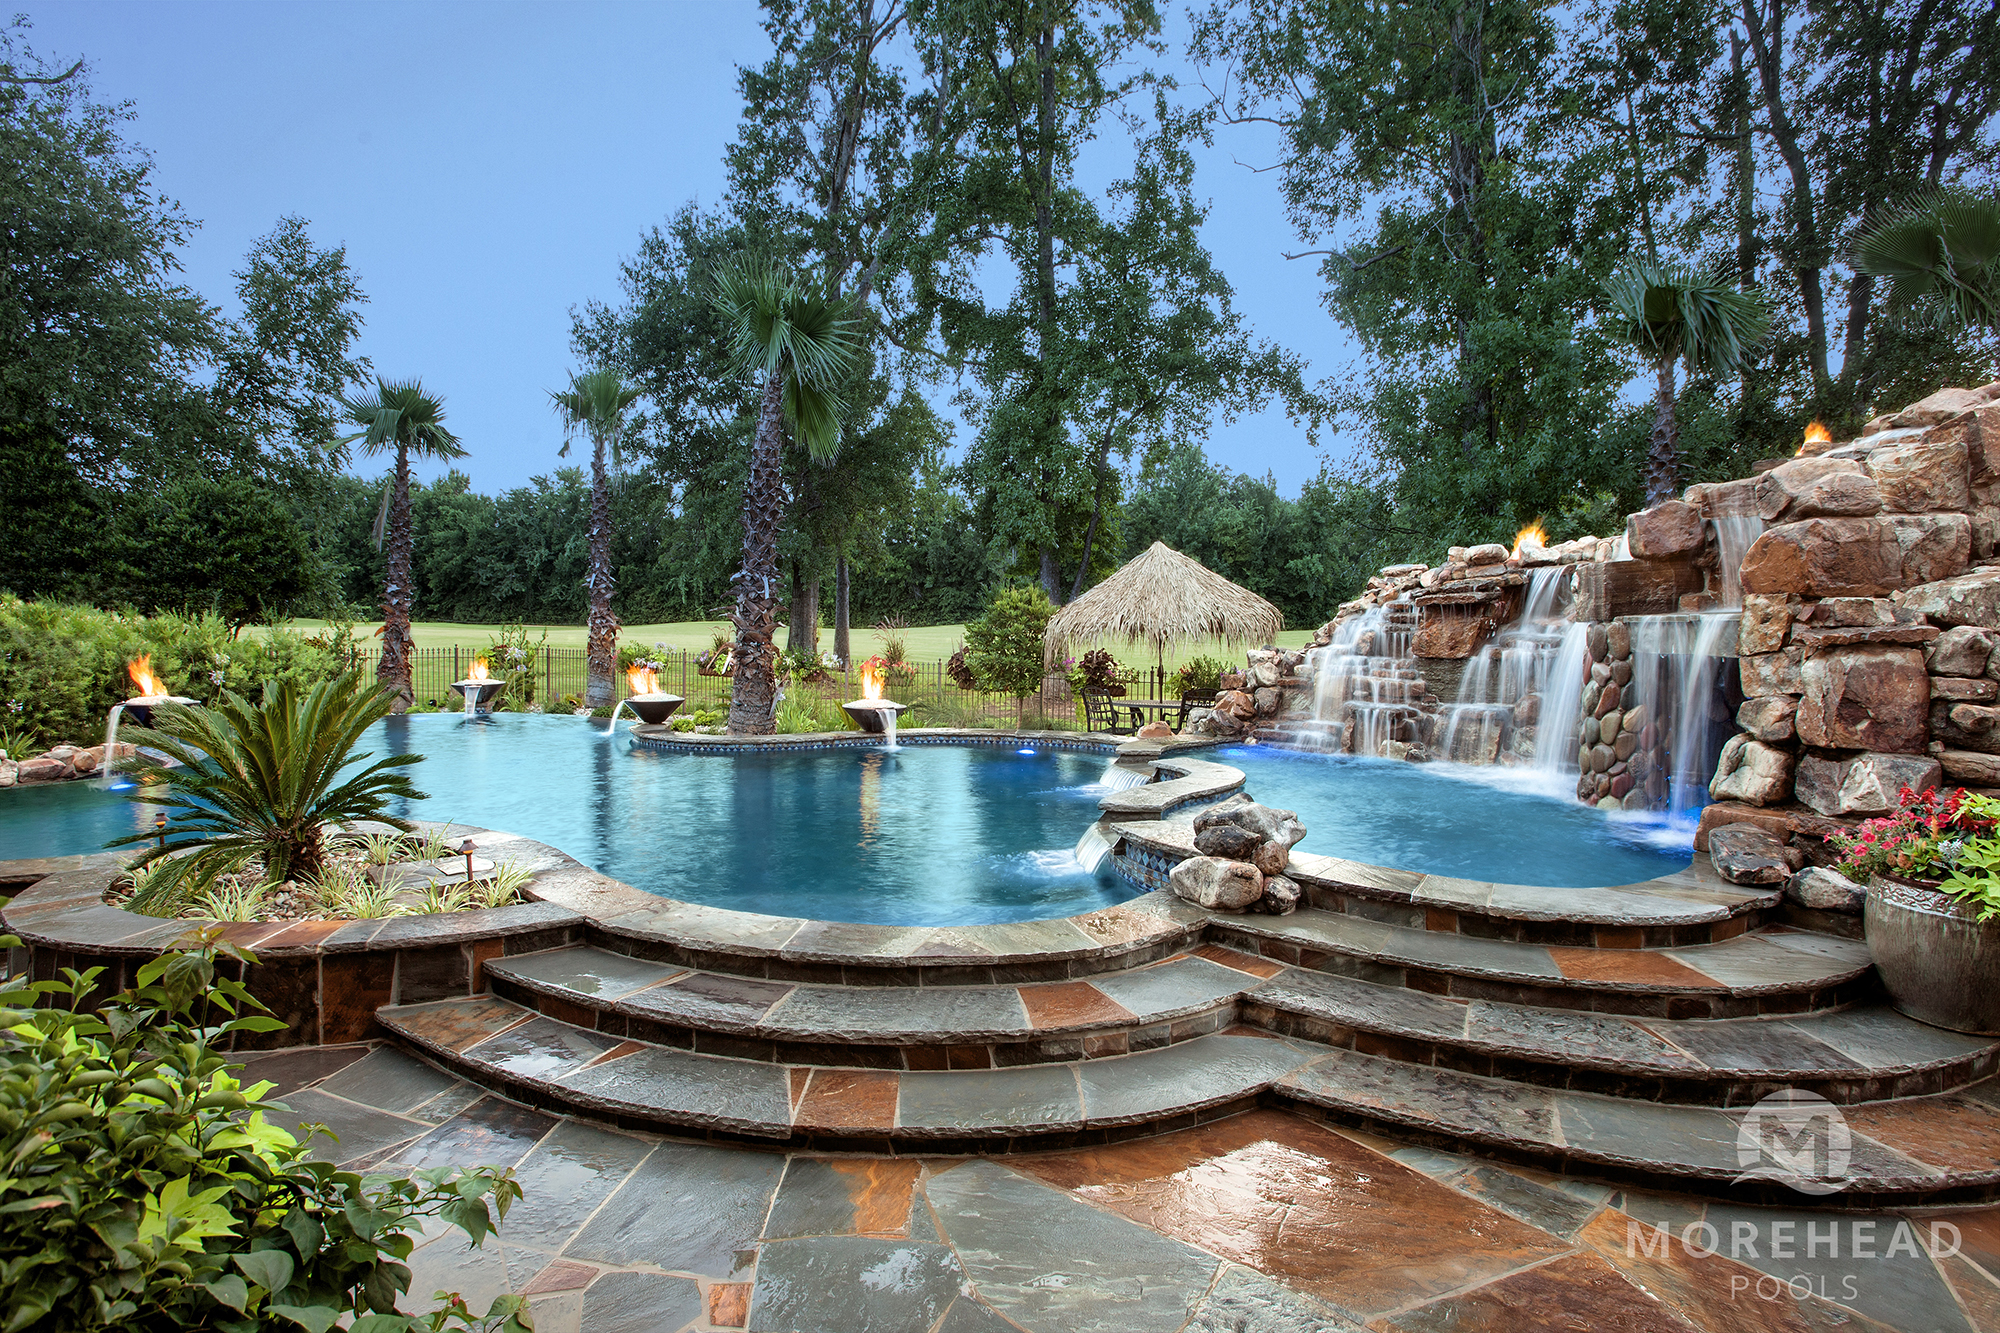 Swimming Pool Waterfalls In Shreveport Bossier City La Morehead Pools